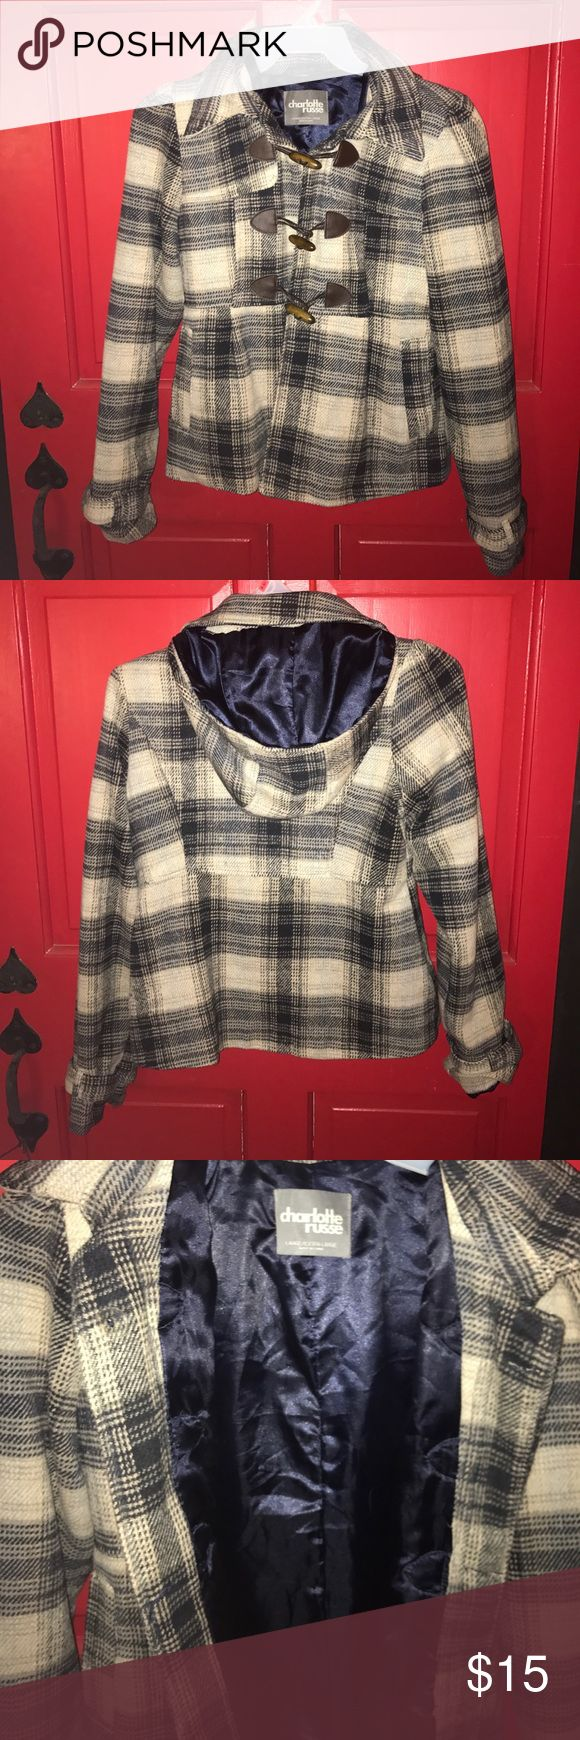 Plaid Fall Peacoat Perfect for fall: Navy blue, gray, and beige peacoat jacket with brown buttons. Removable hood. No zipper. Fits more like a medium. Please feel free to ask any additional questions!   ✨ Make an offer with the offer button! 🚭Smoke free home!  ❌no trades, sorry! Charlotte Russe Jackets & Coats Pea Coats